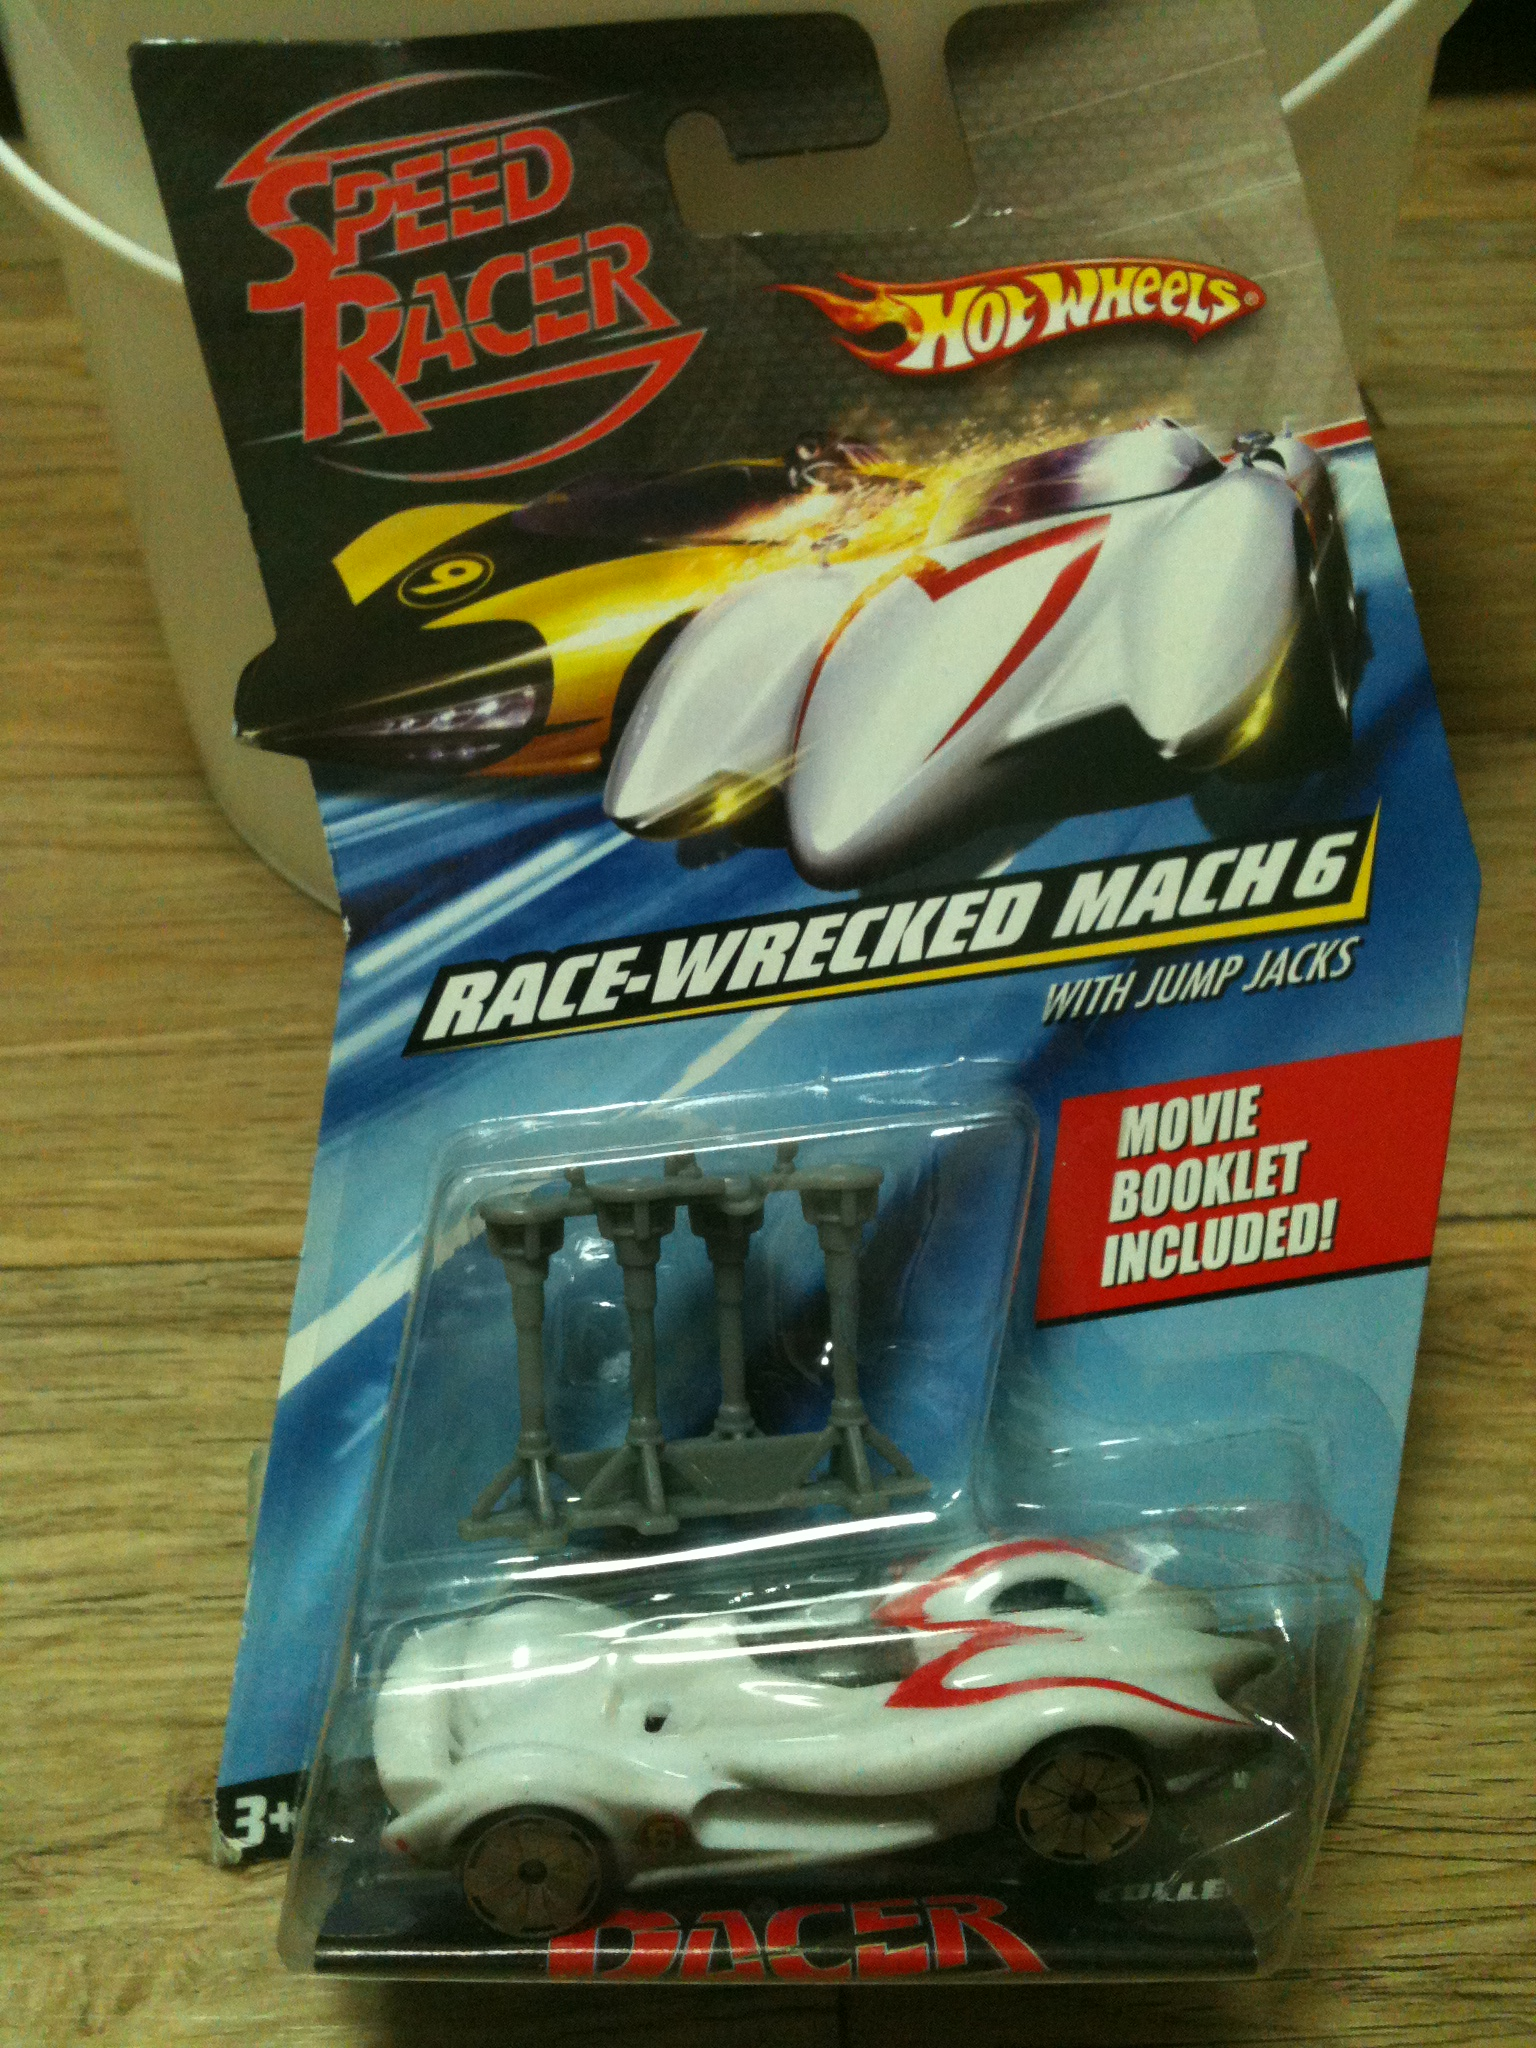 Speed Racer - Race-Wrecked Mach 6 - with ..